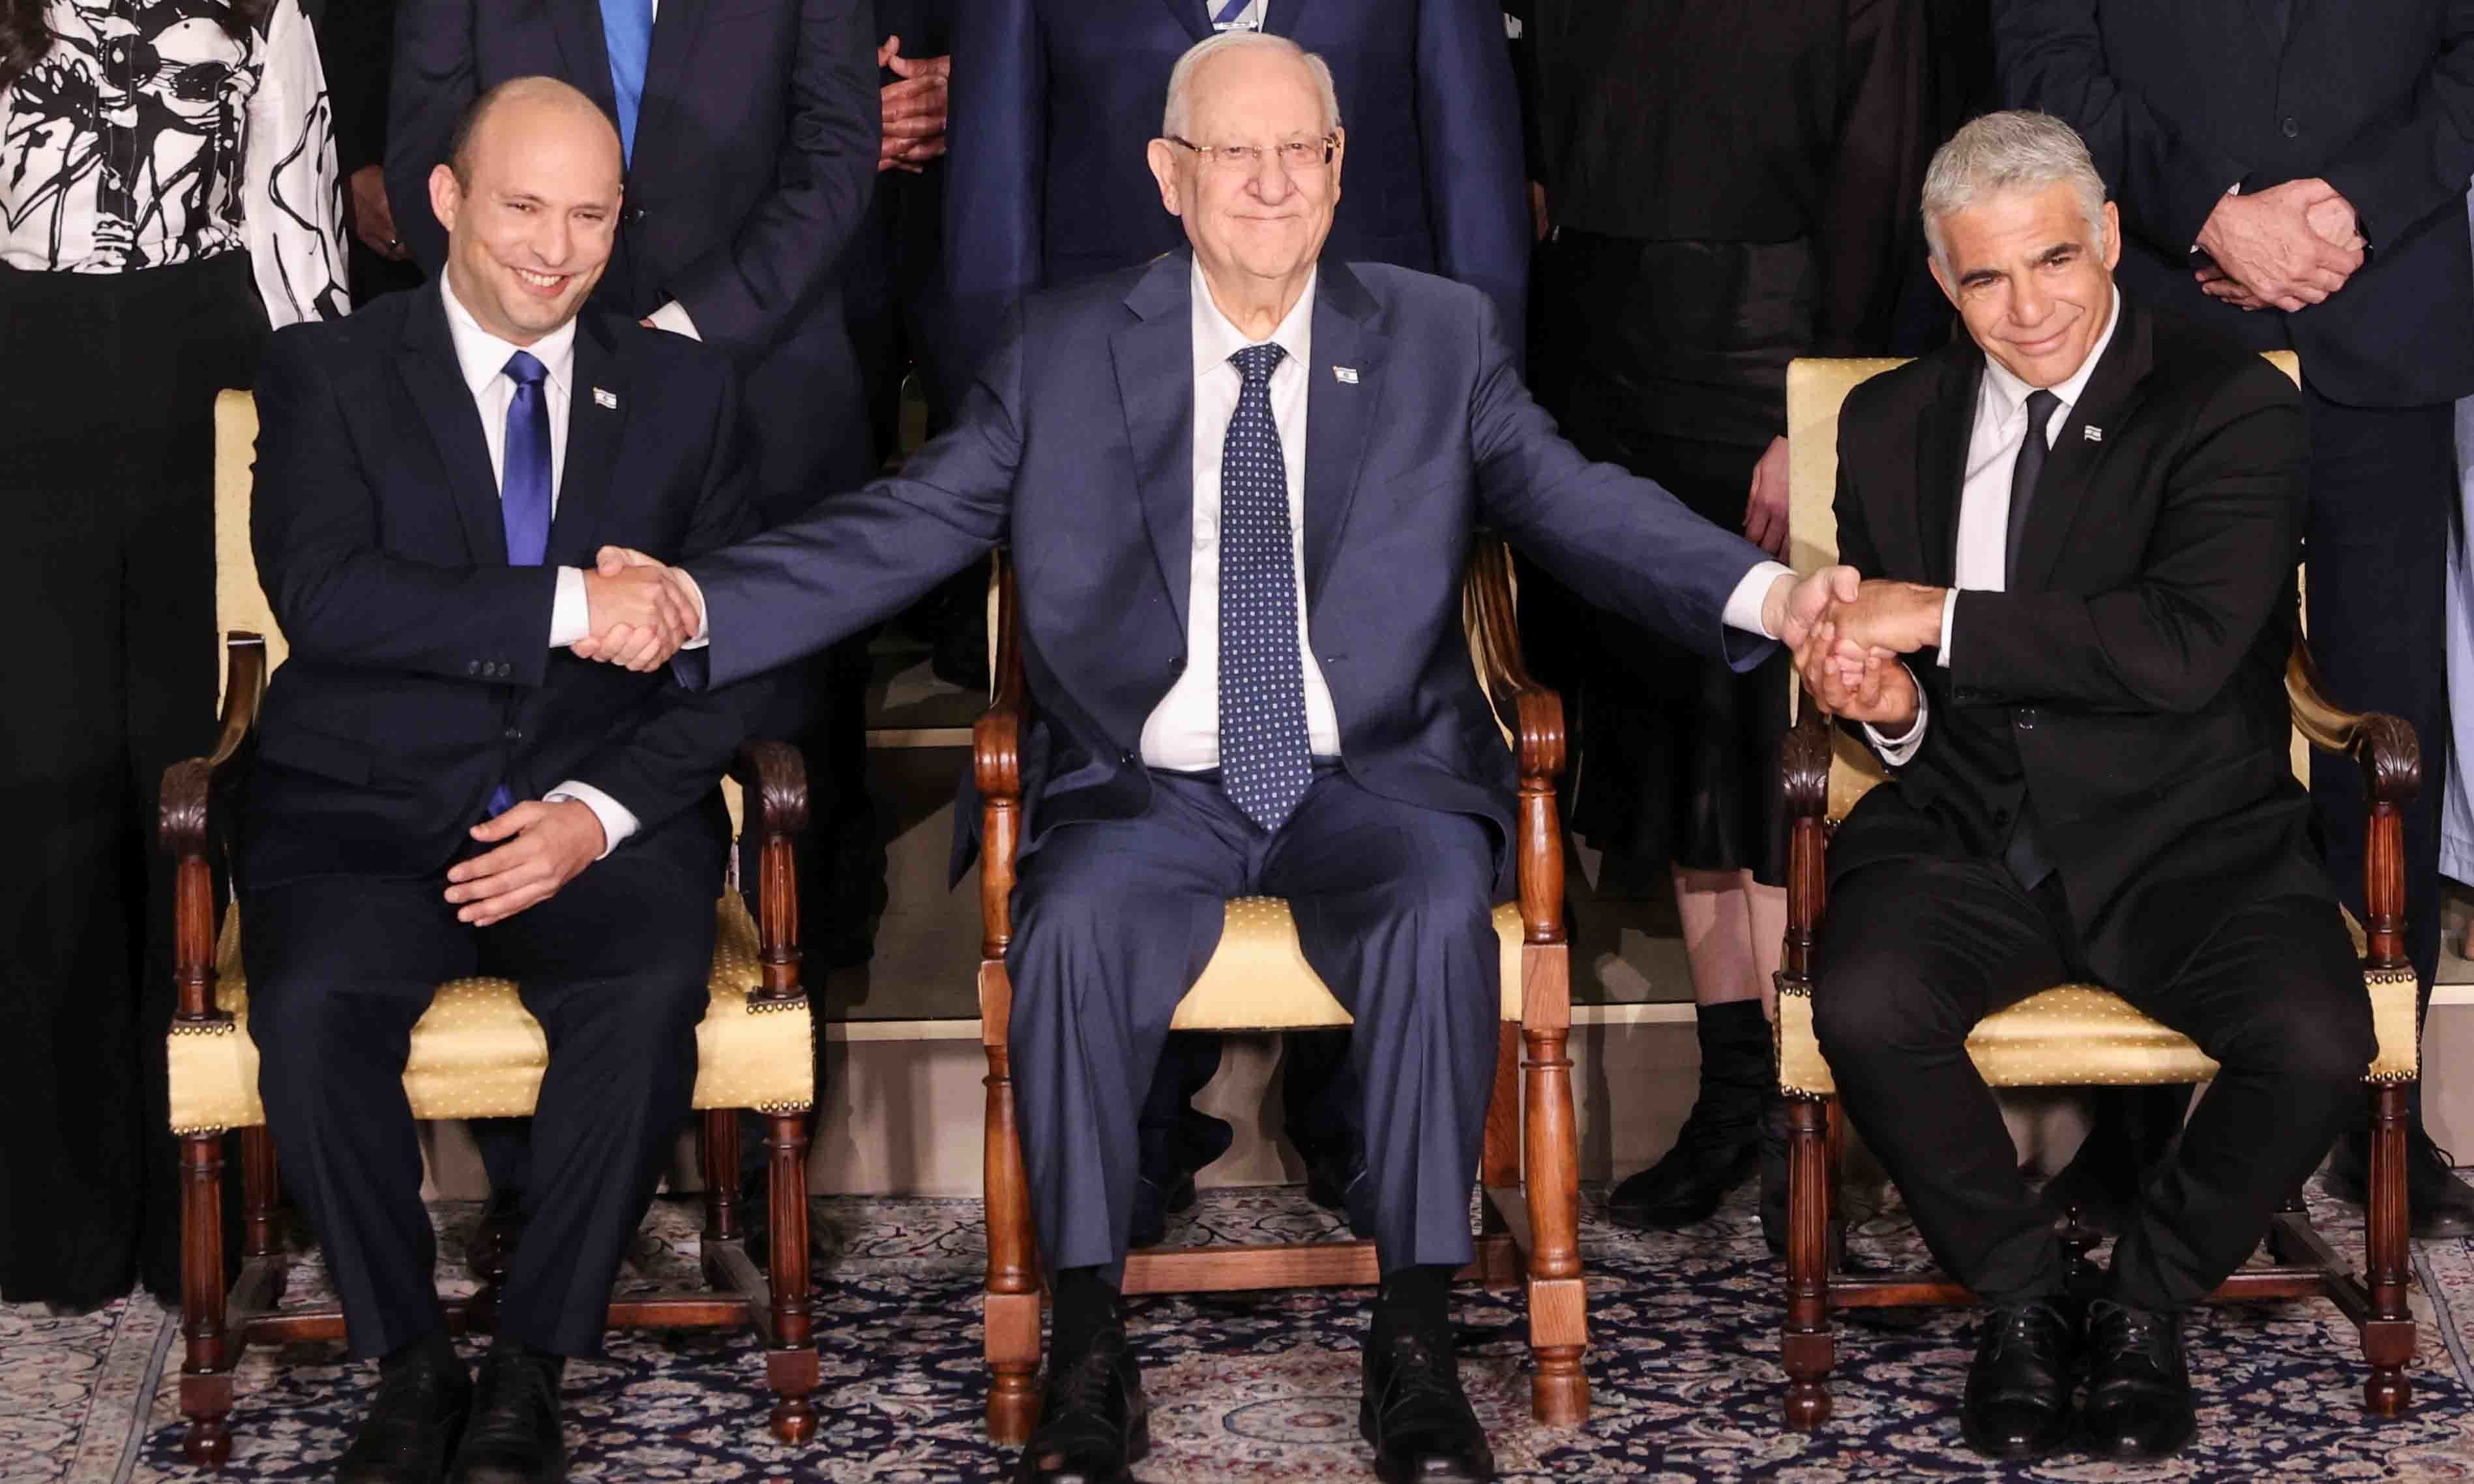 srael's President Reuven Rivlin between Prime Minister Naftali Bennett and Foreign Minister Yair Lapid as they pose for a group photo with ministers of the new Israeli government, in Jerusalem on June 14. — Reuters